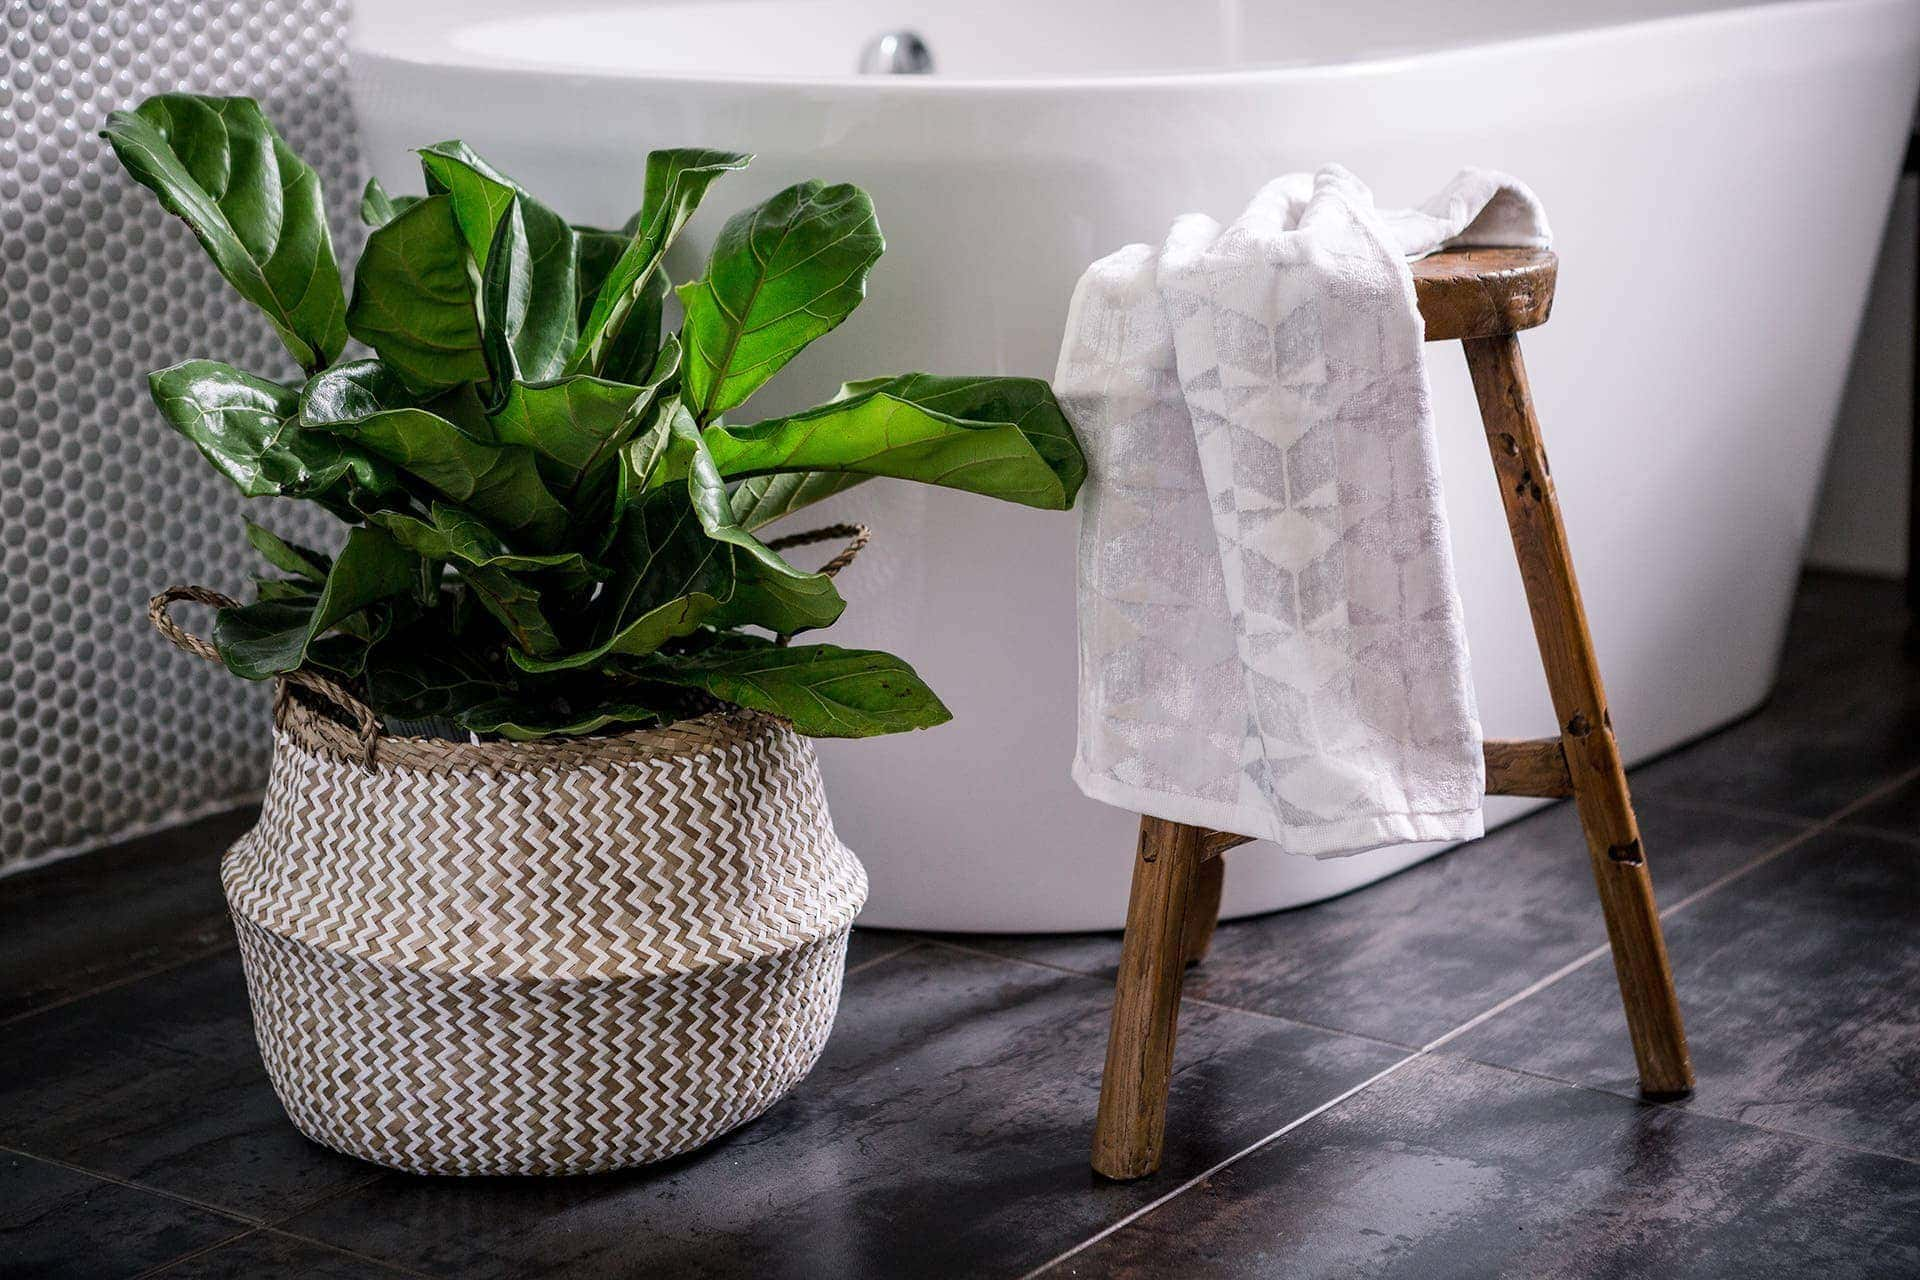 fiddle leaf fig in bathroom inside striped belly basket on dark bathroom floor